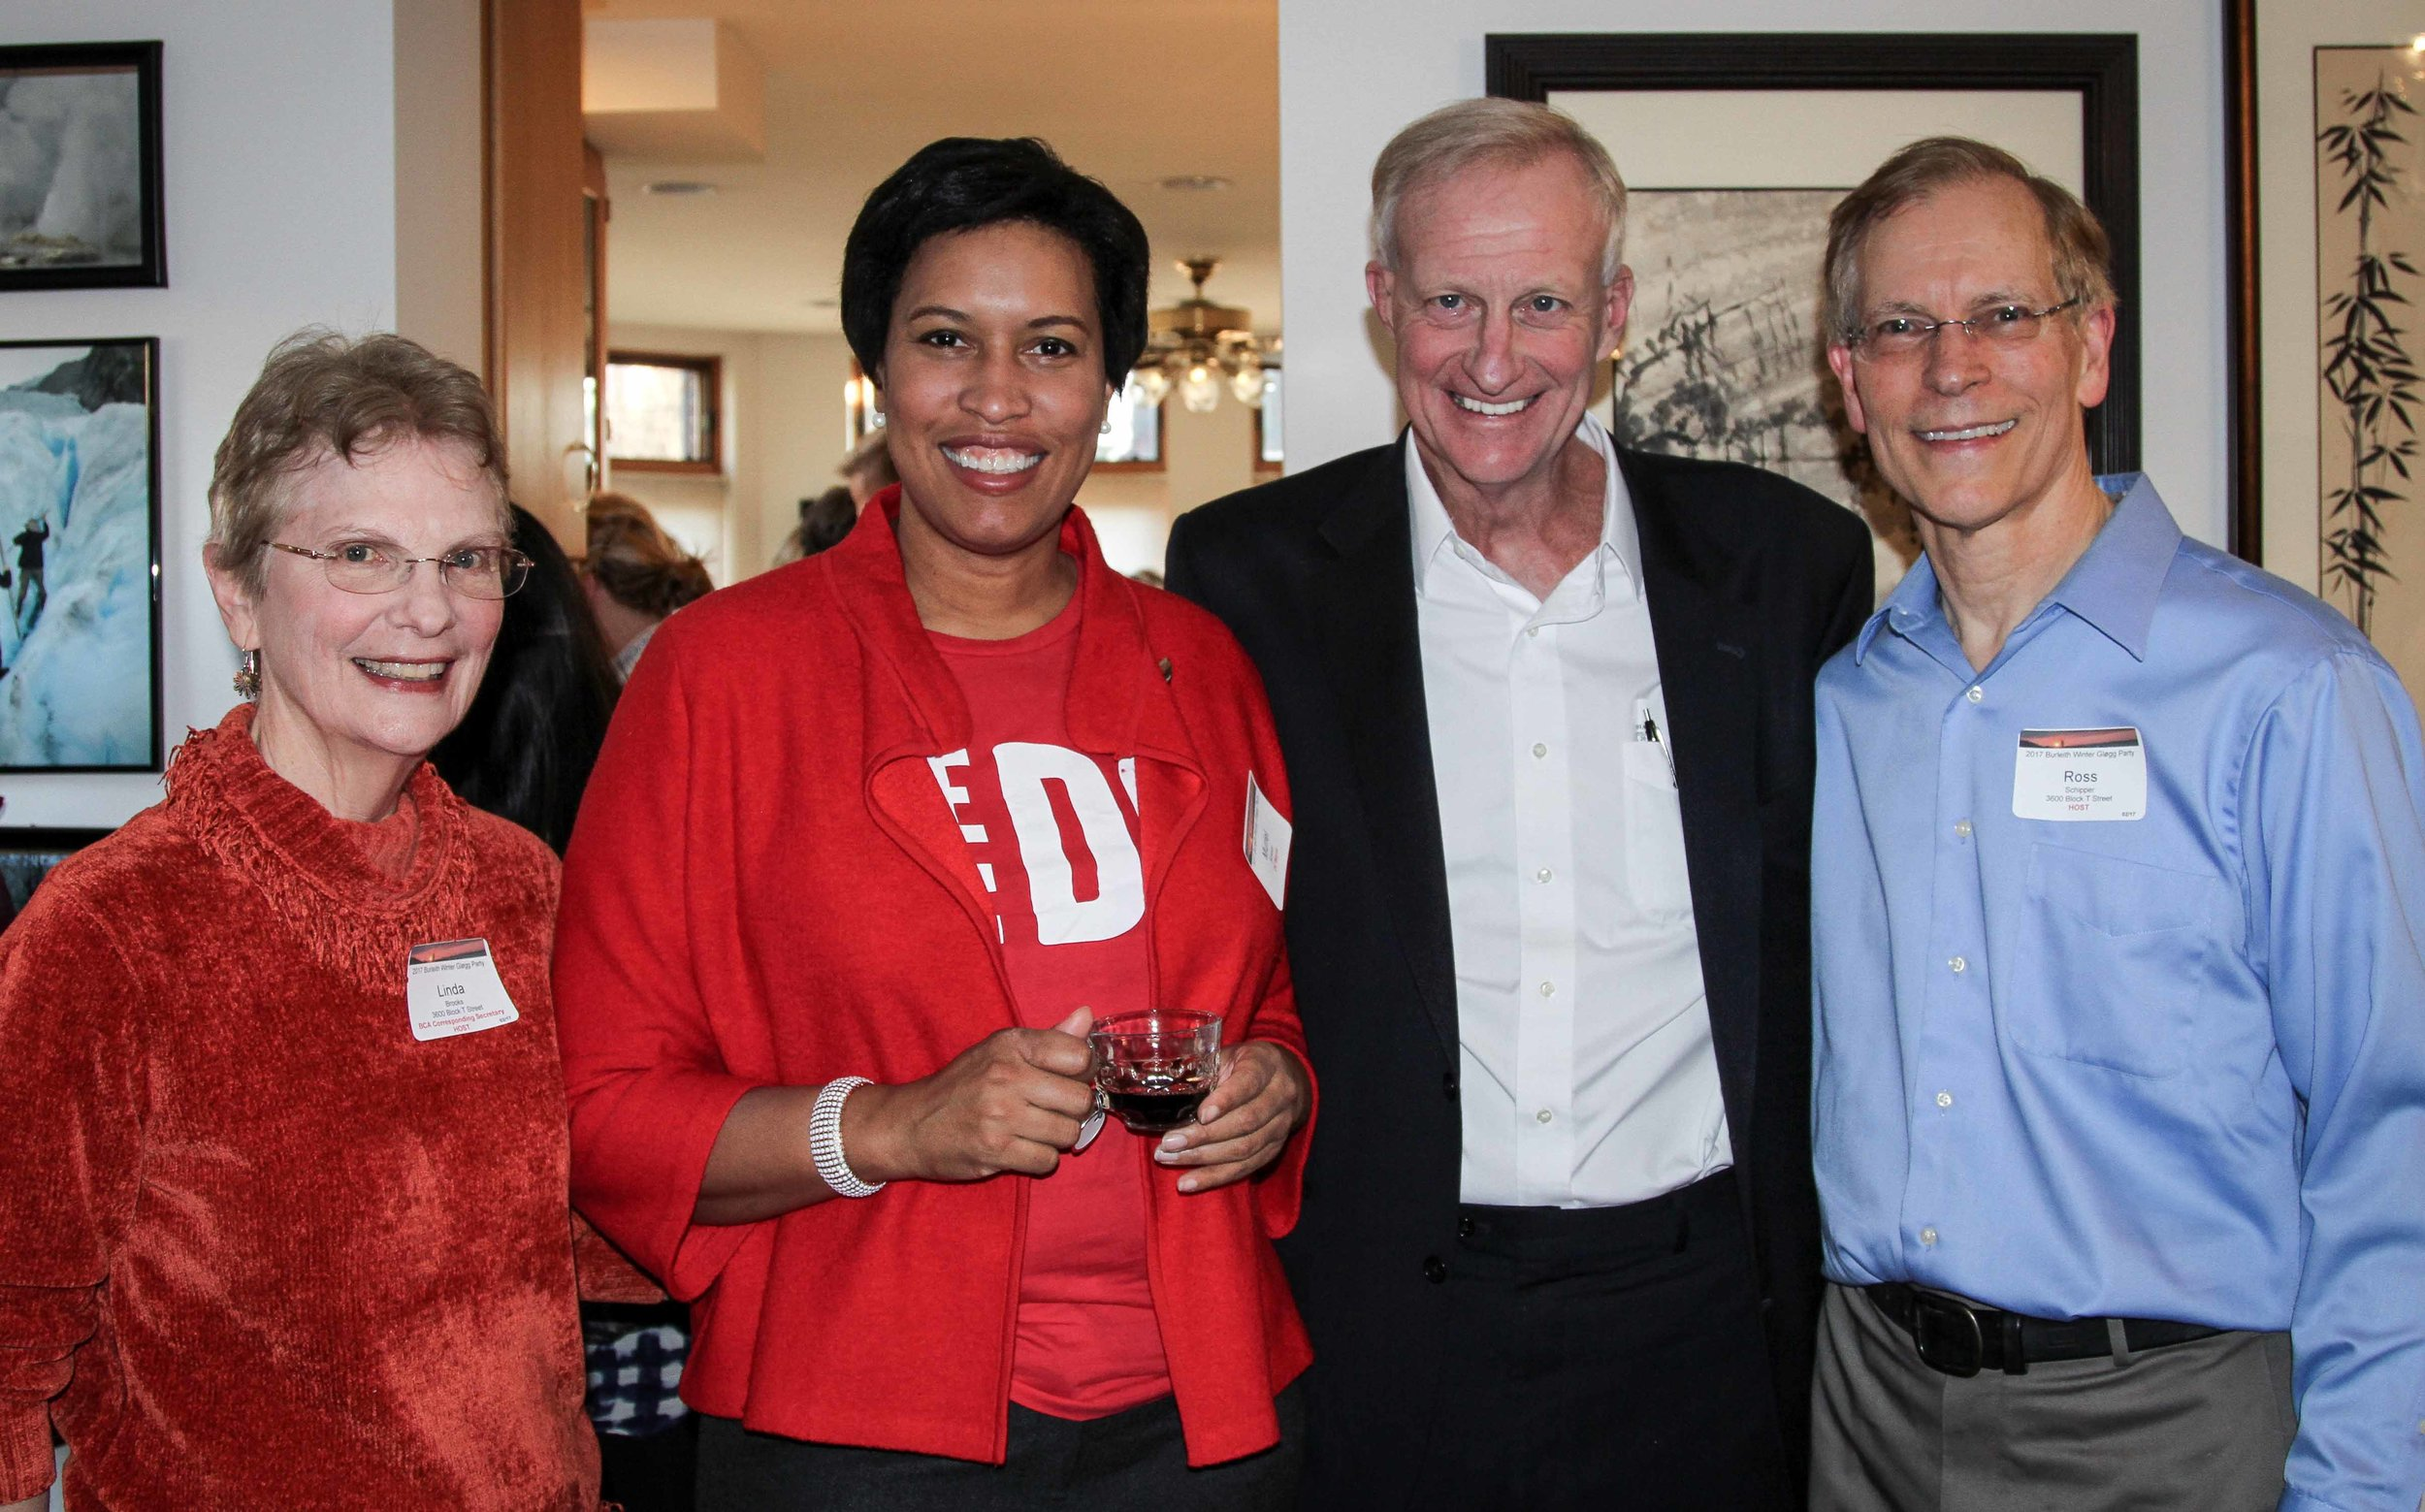 Mayor Bowser and Ward 2 Councilmember Evans joined hosts Linda Brooks and Ross Schipper at the 2017 event.